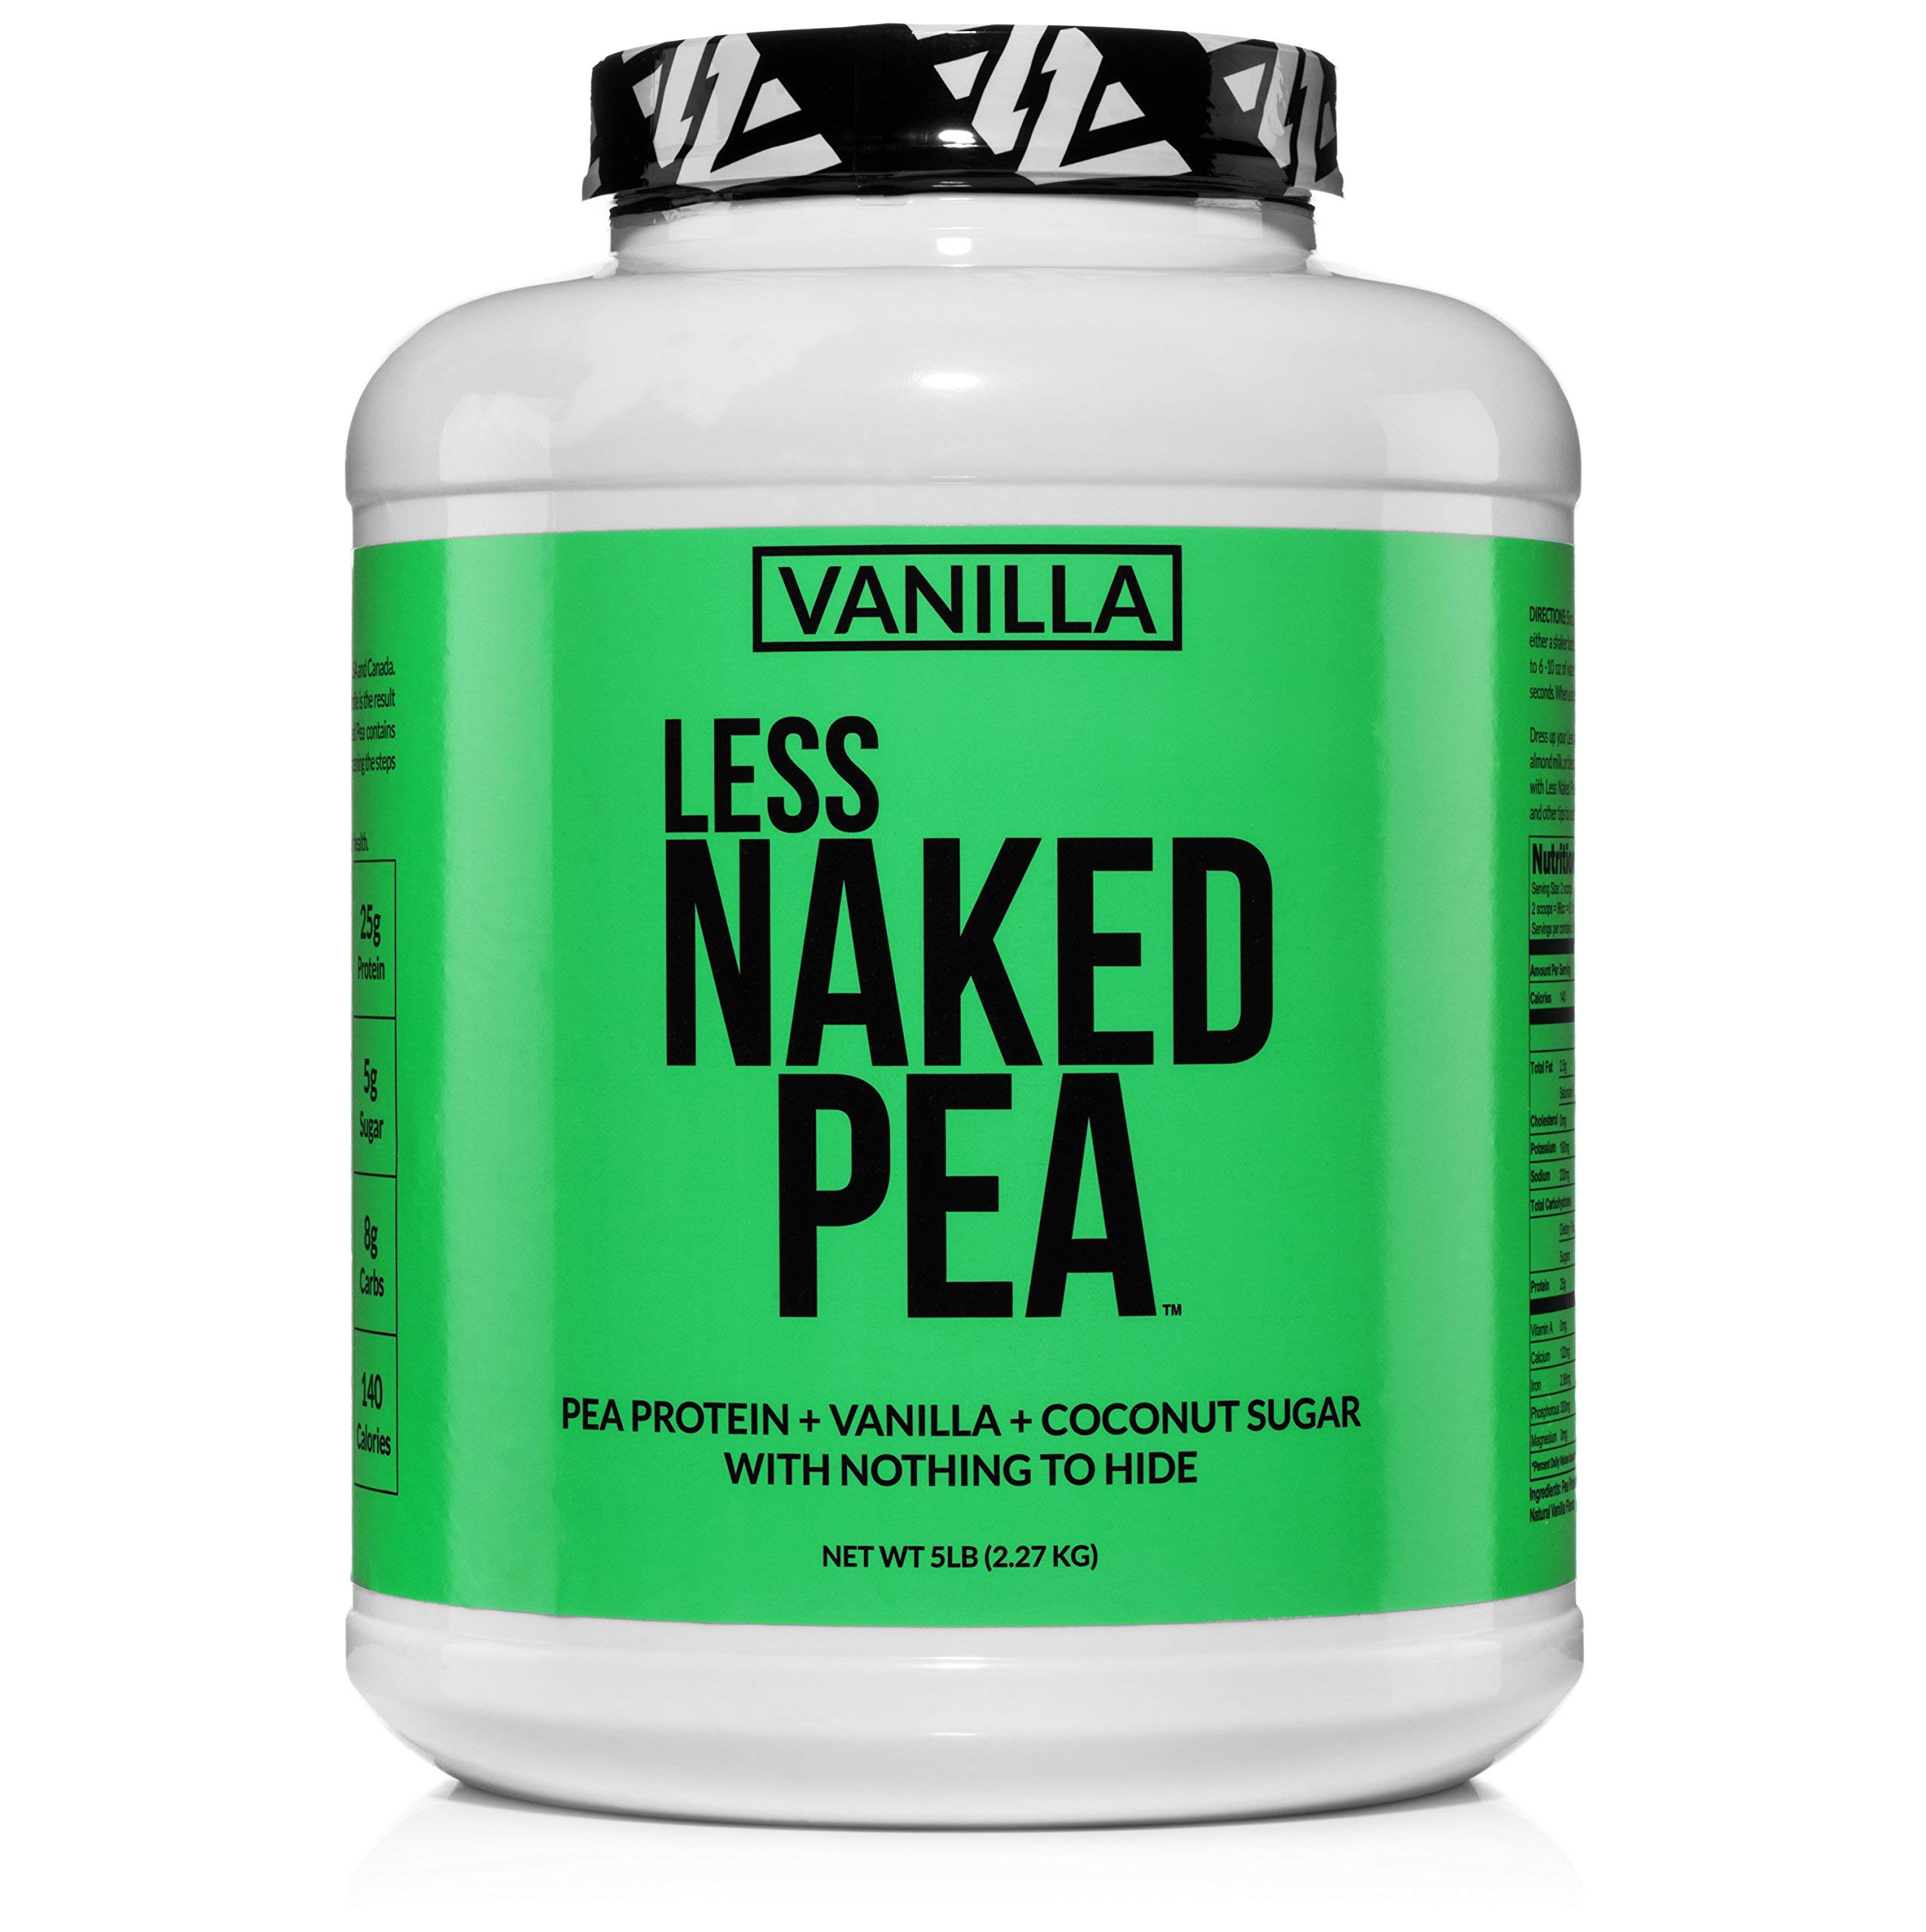 LESS NAKED PEA - VANILLA PEA PROTEIN - Pea Protein Isolate from North American Farms - 5lb Bulk, Plant Based, Vegetarian & Vegan Protein. Easy to Digest, Non-GMO, Gluten Free, Lactose Free, Soy Free by NAKED nutrition